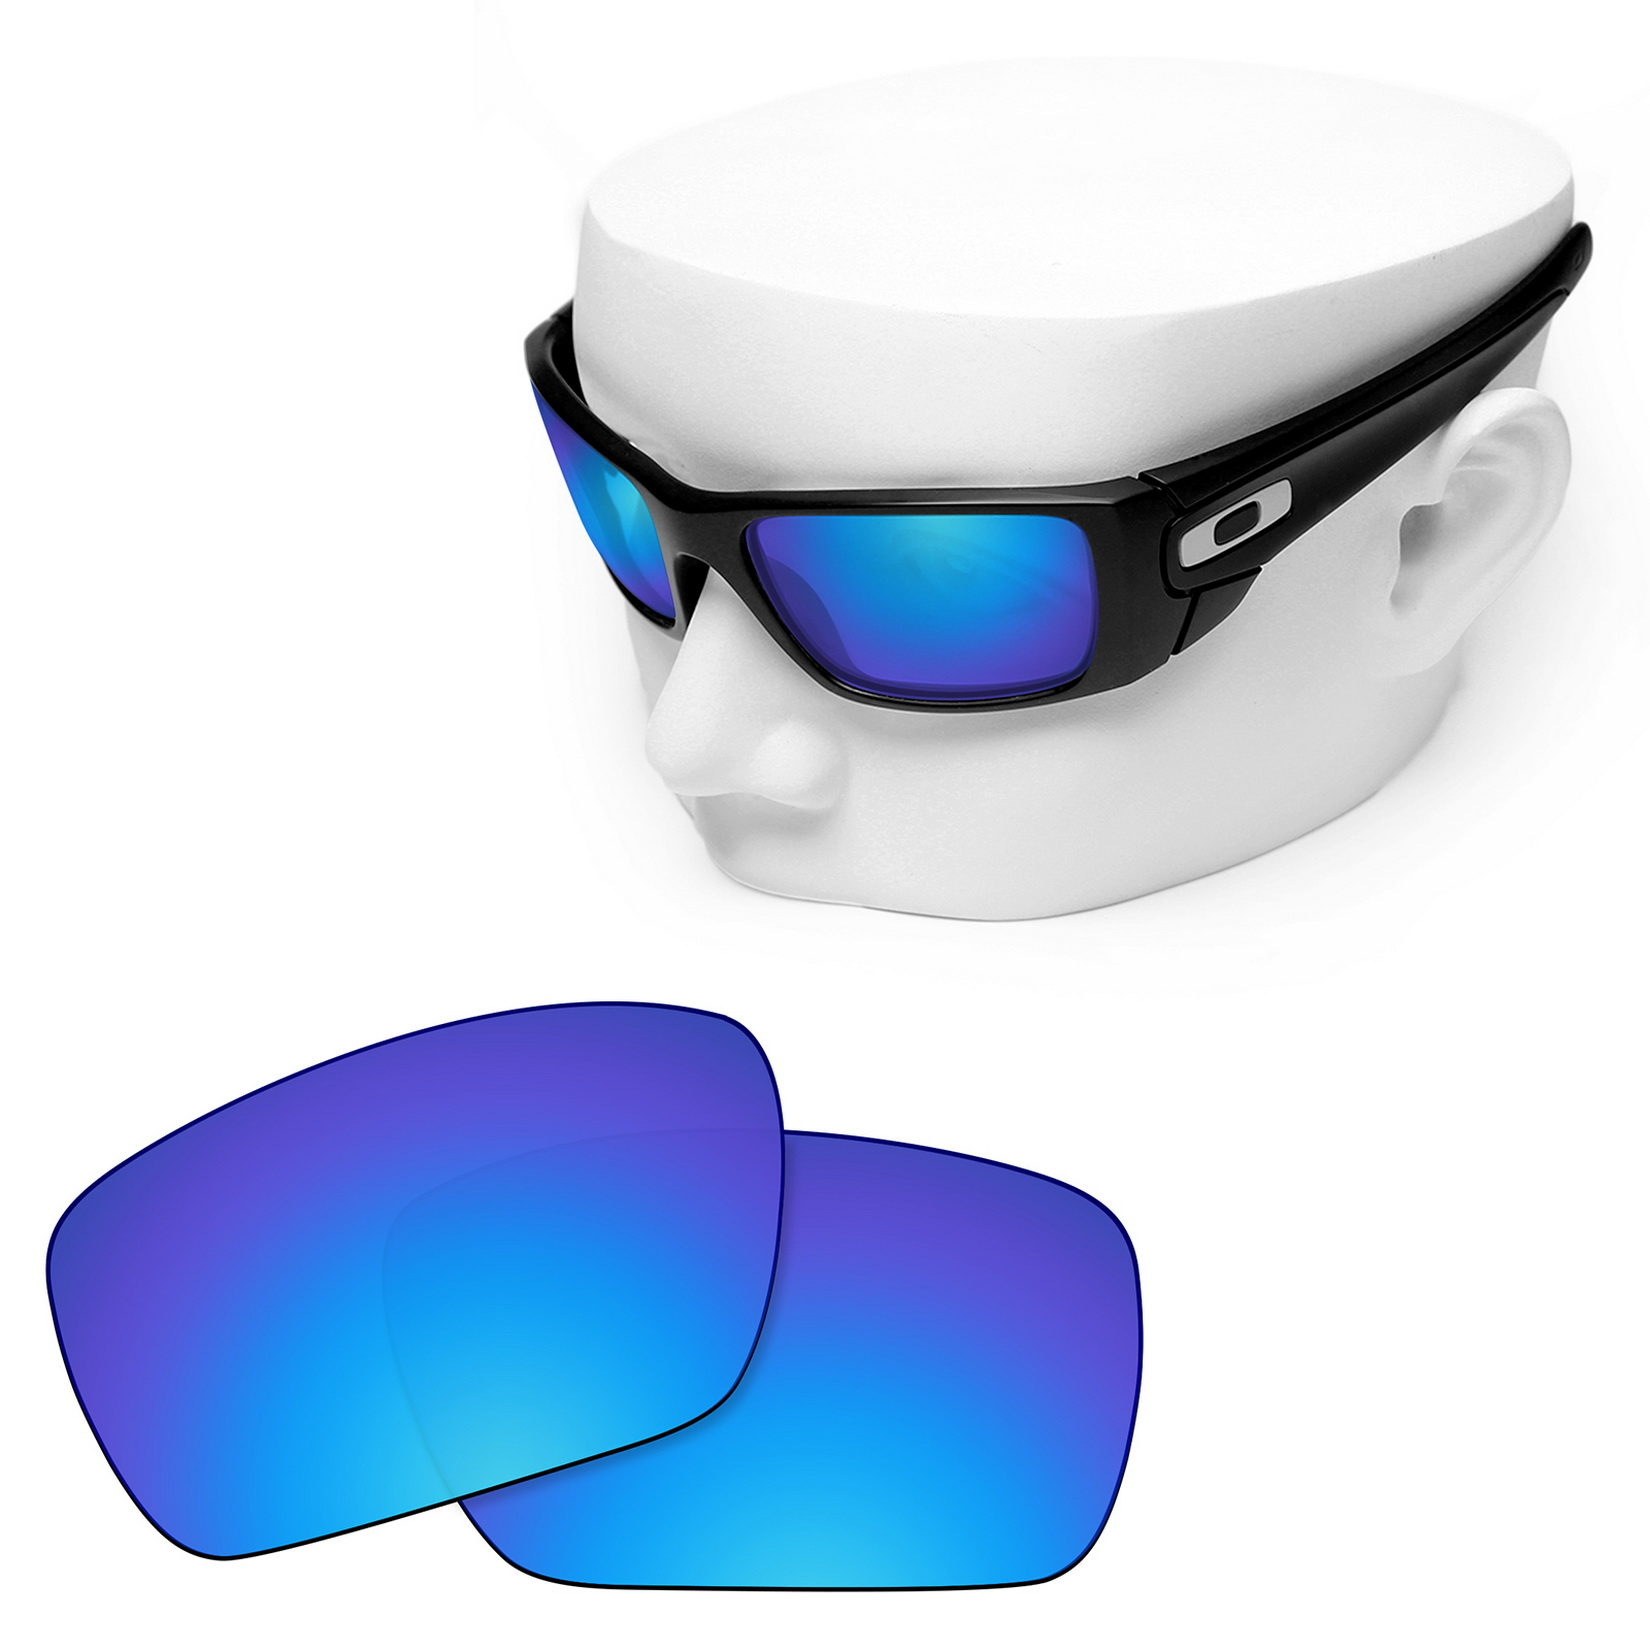 OOWLIT Polarized Replacement Lenses Blue Mirror For-Oakley Fuel Cell Sunglasses